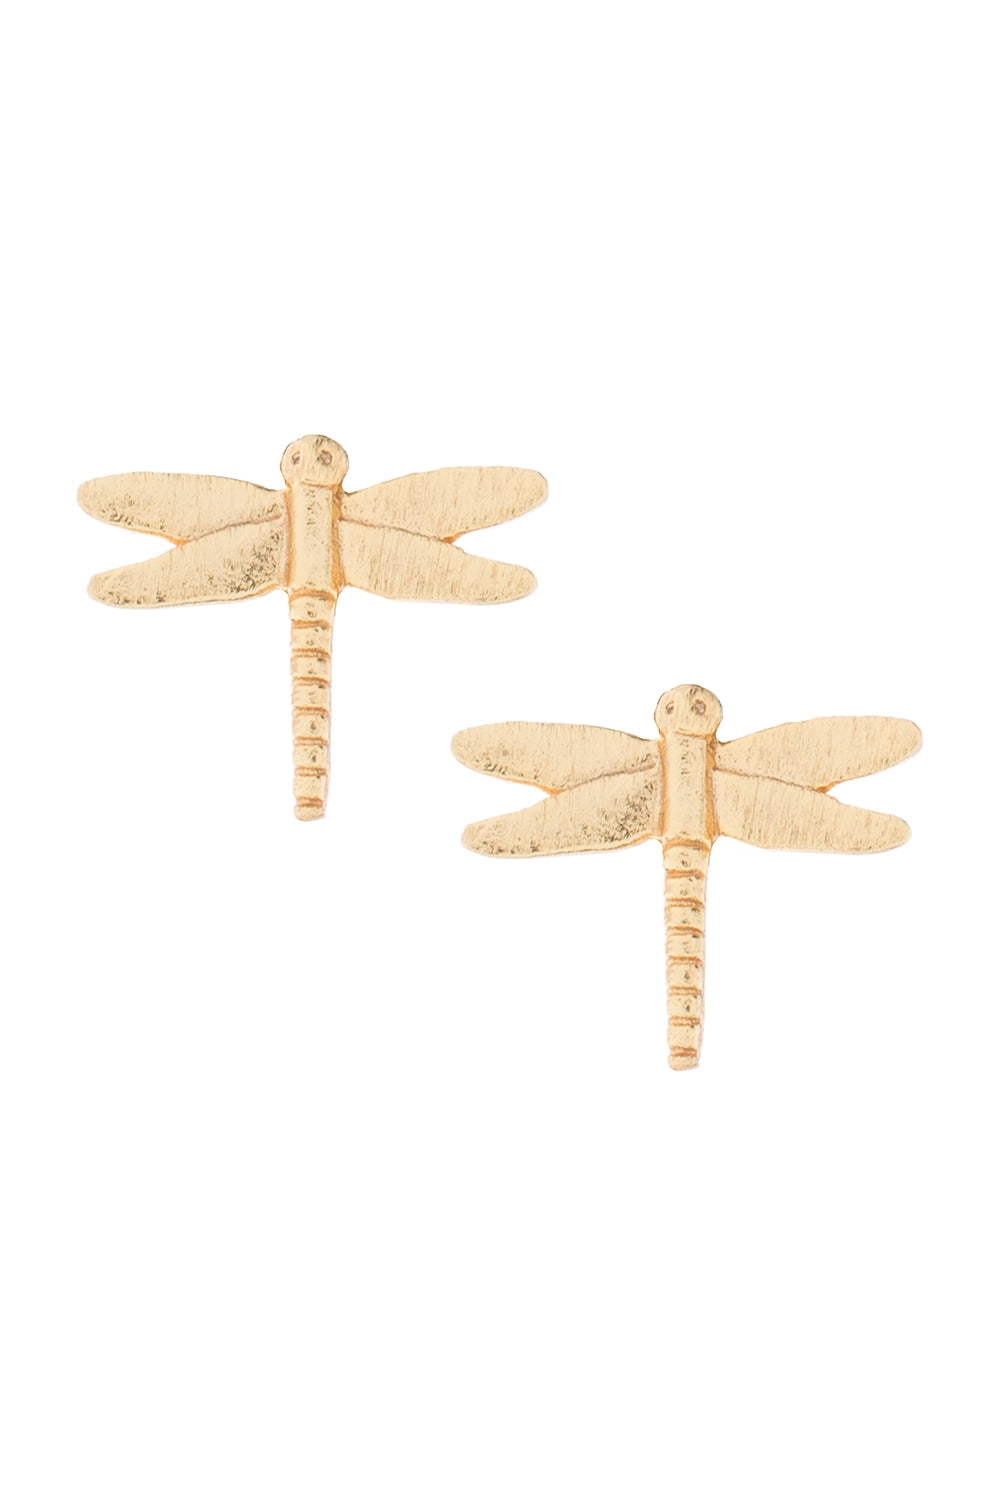 Type 1 Dragonfly Charm Earrings